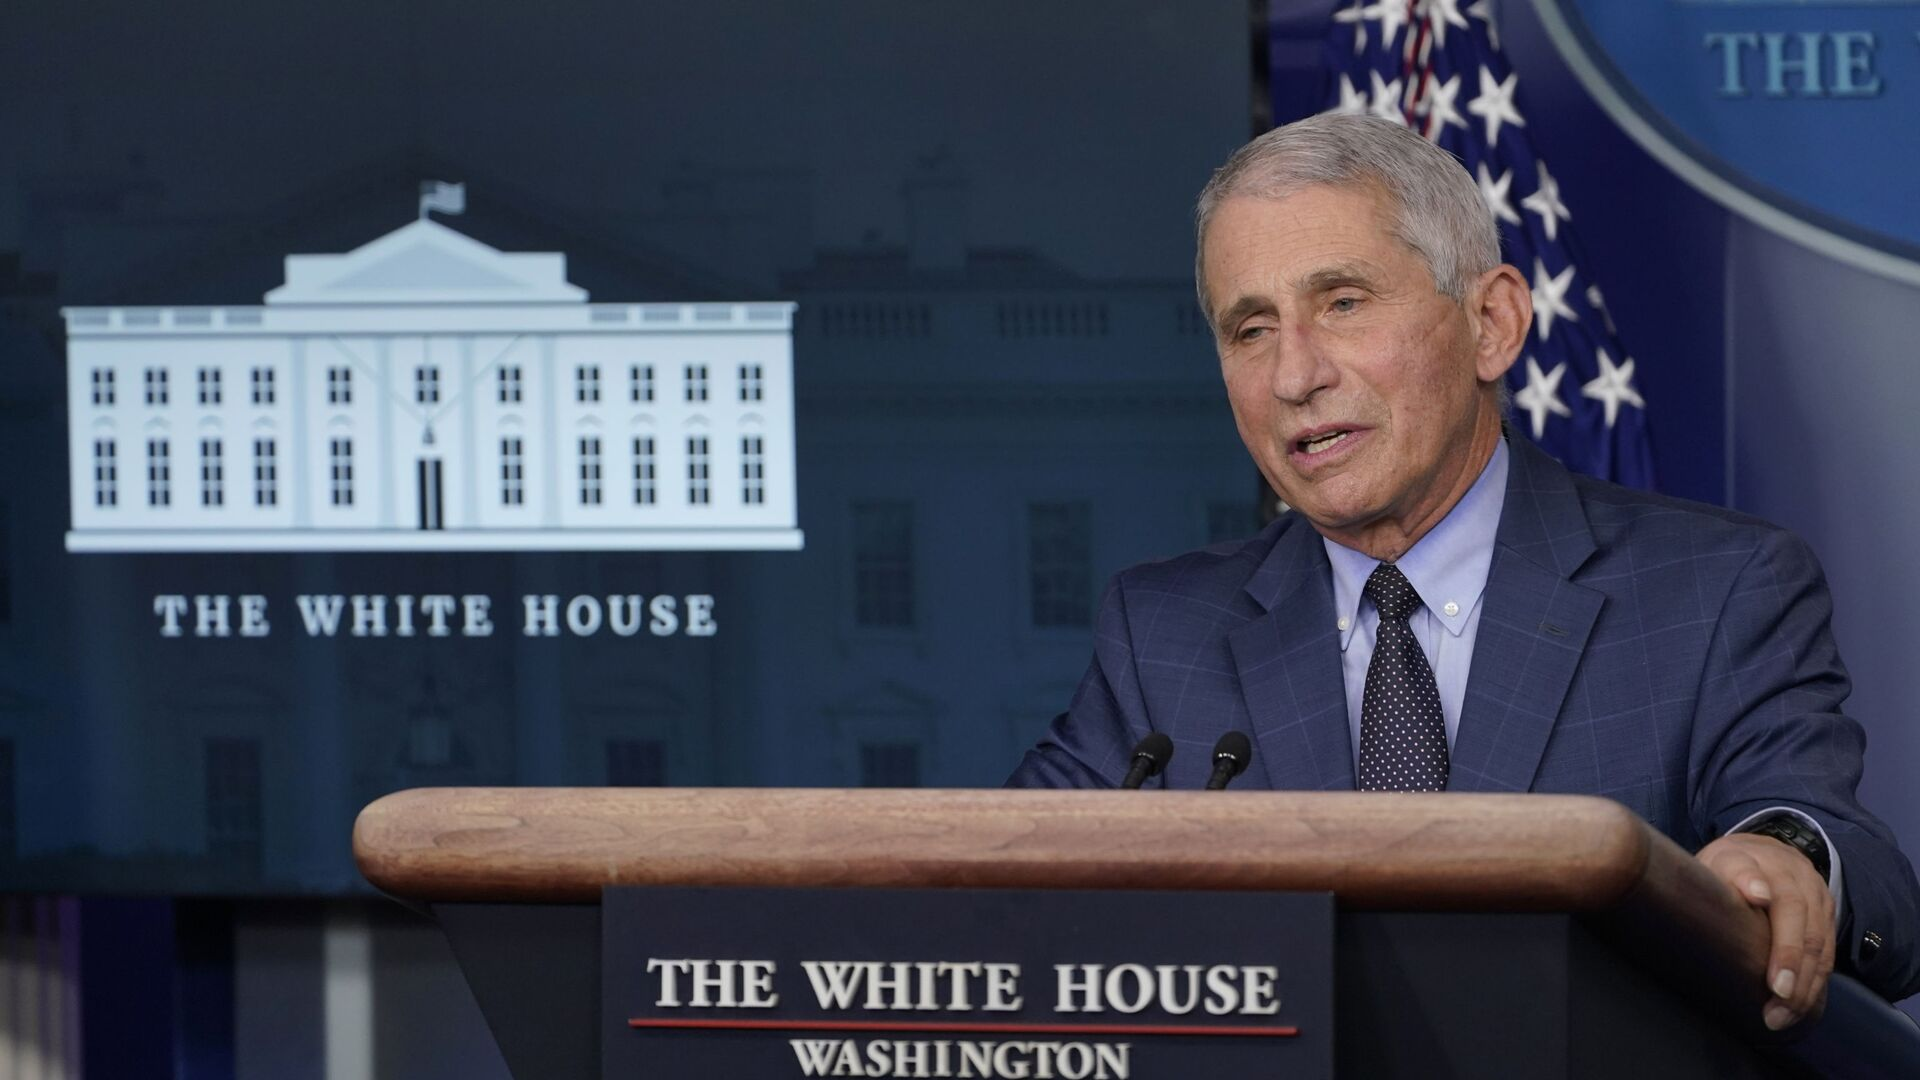 Dr. Anthony Fauci, director of the National Institute of Allergy and Infectious Diseases, speaks during a briefing with the coronavirus task force at the White House in Washington, Thursday, Nov. 19, 2020 - Sputnik Italia, 1920, 26.08.2021